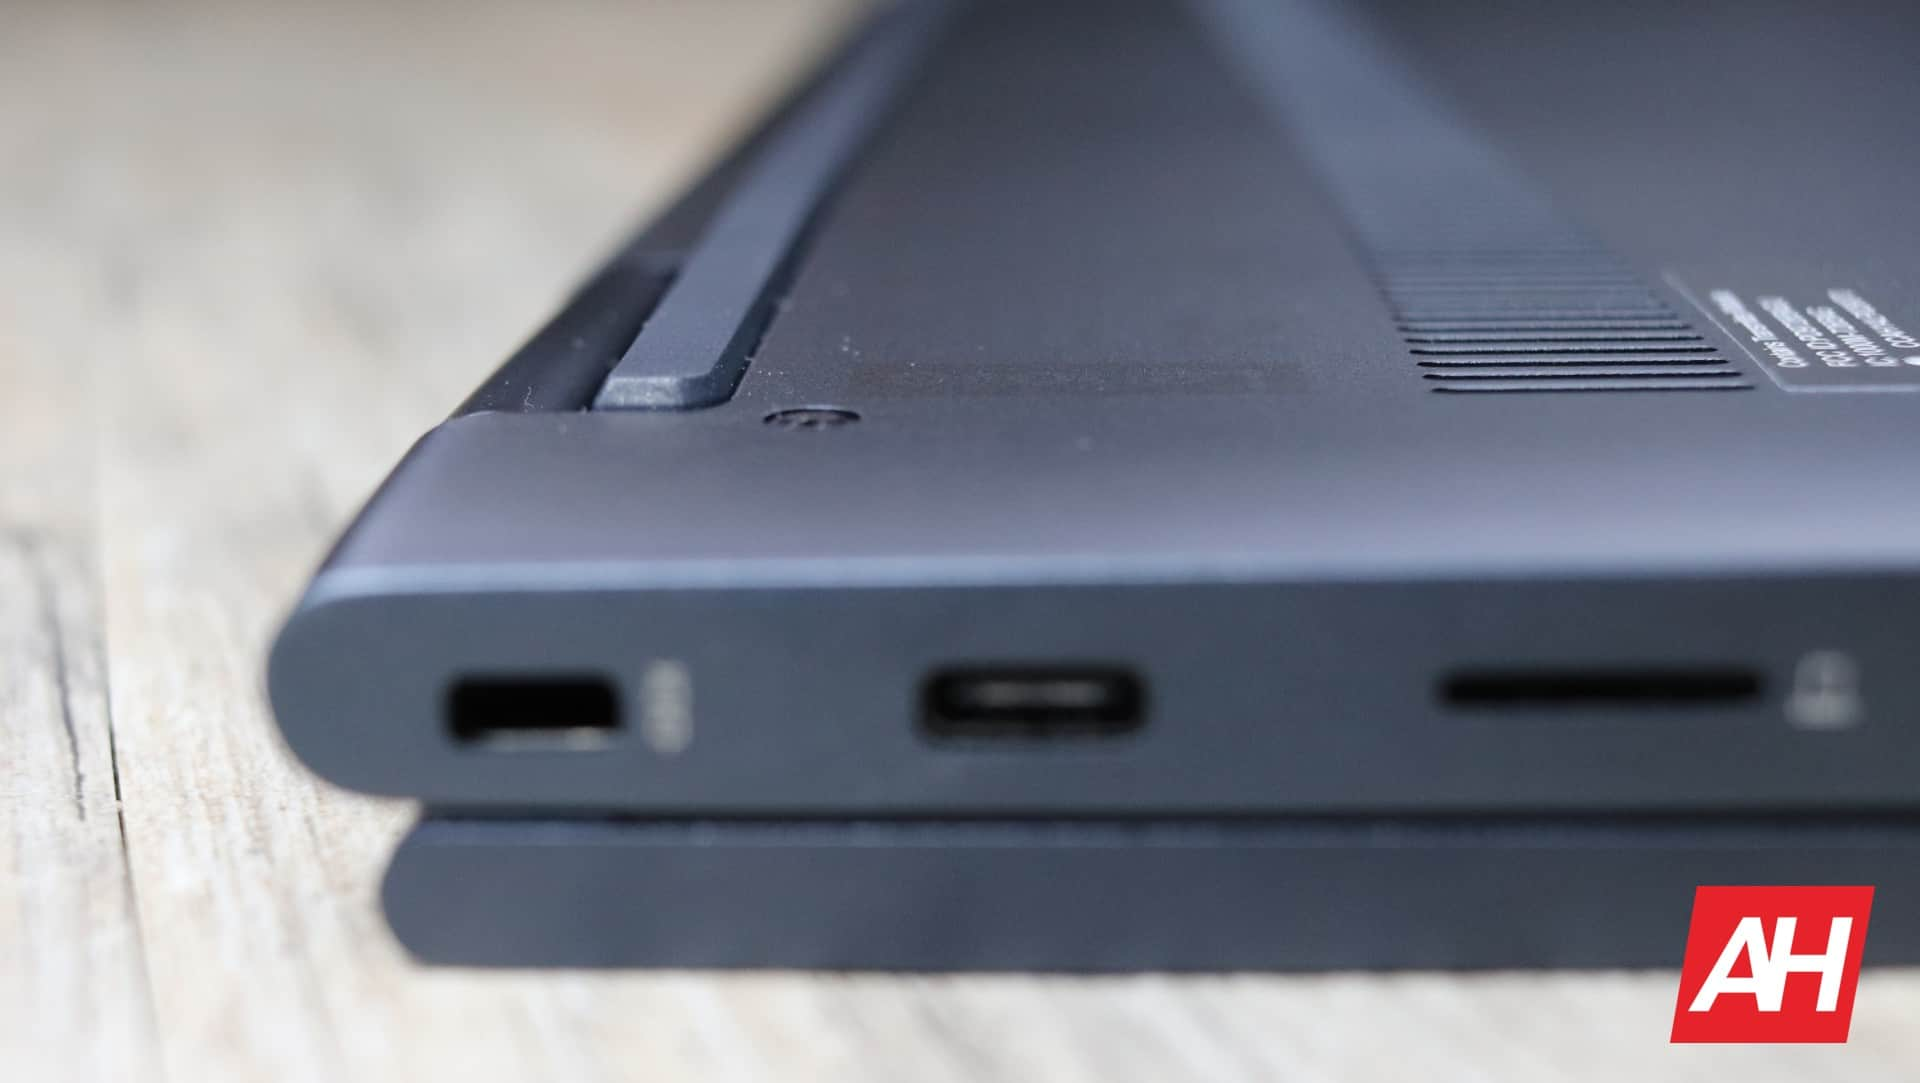 Lenovo Yoga Chromebook C630 Review Hardware AH 20